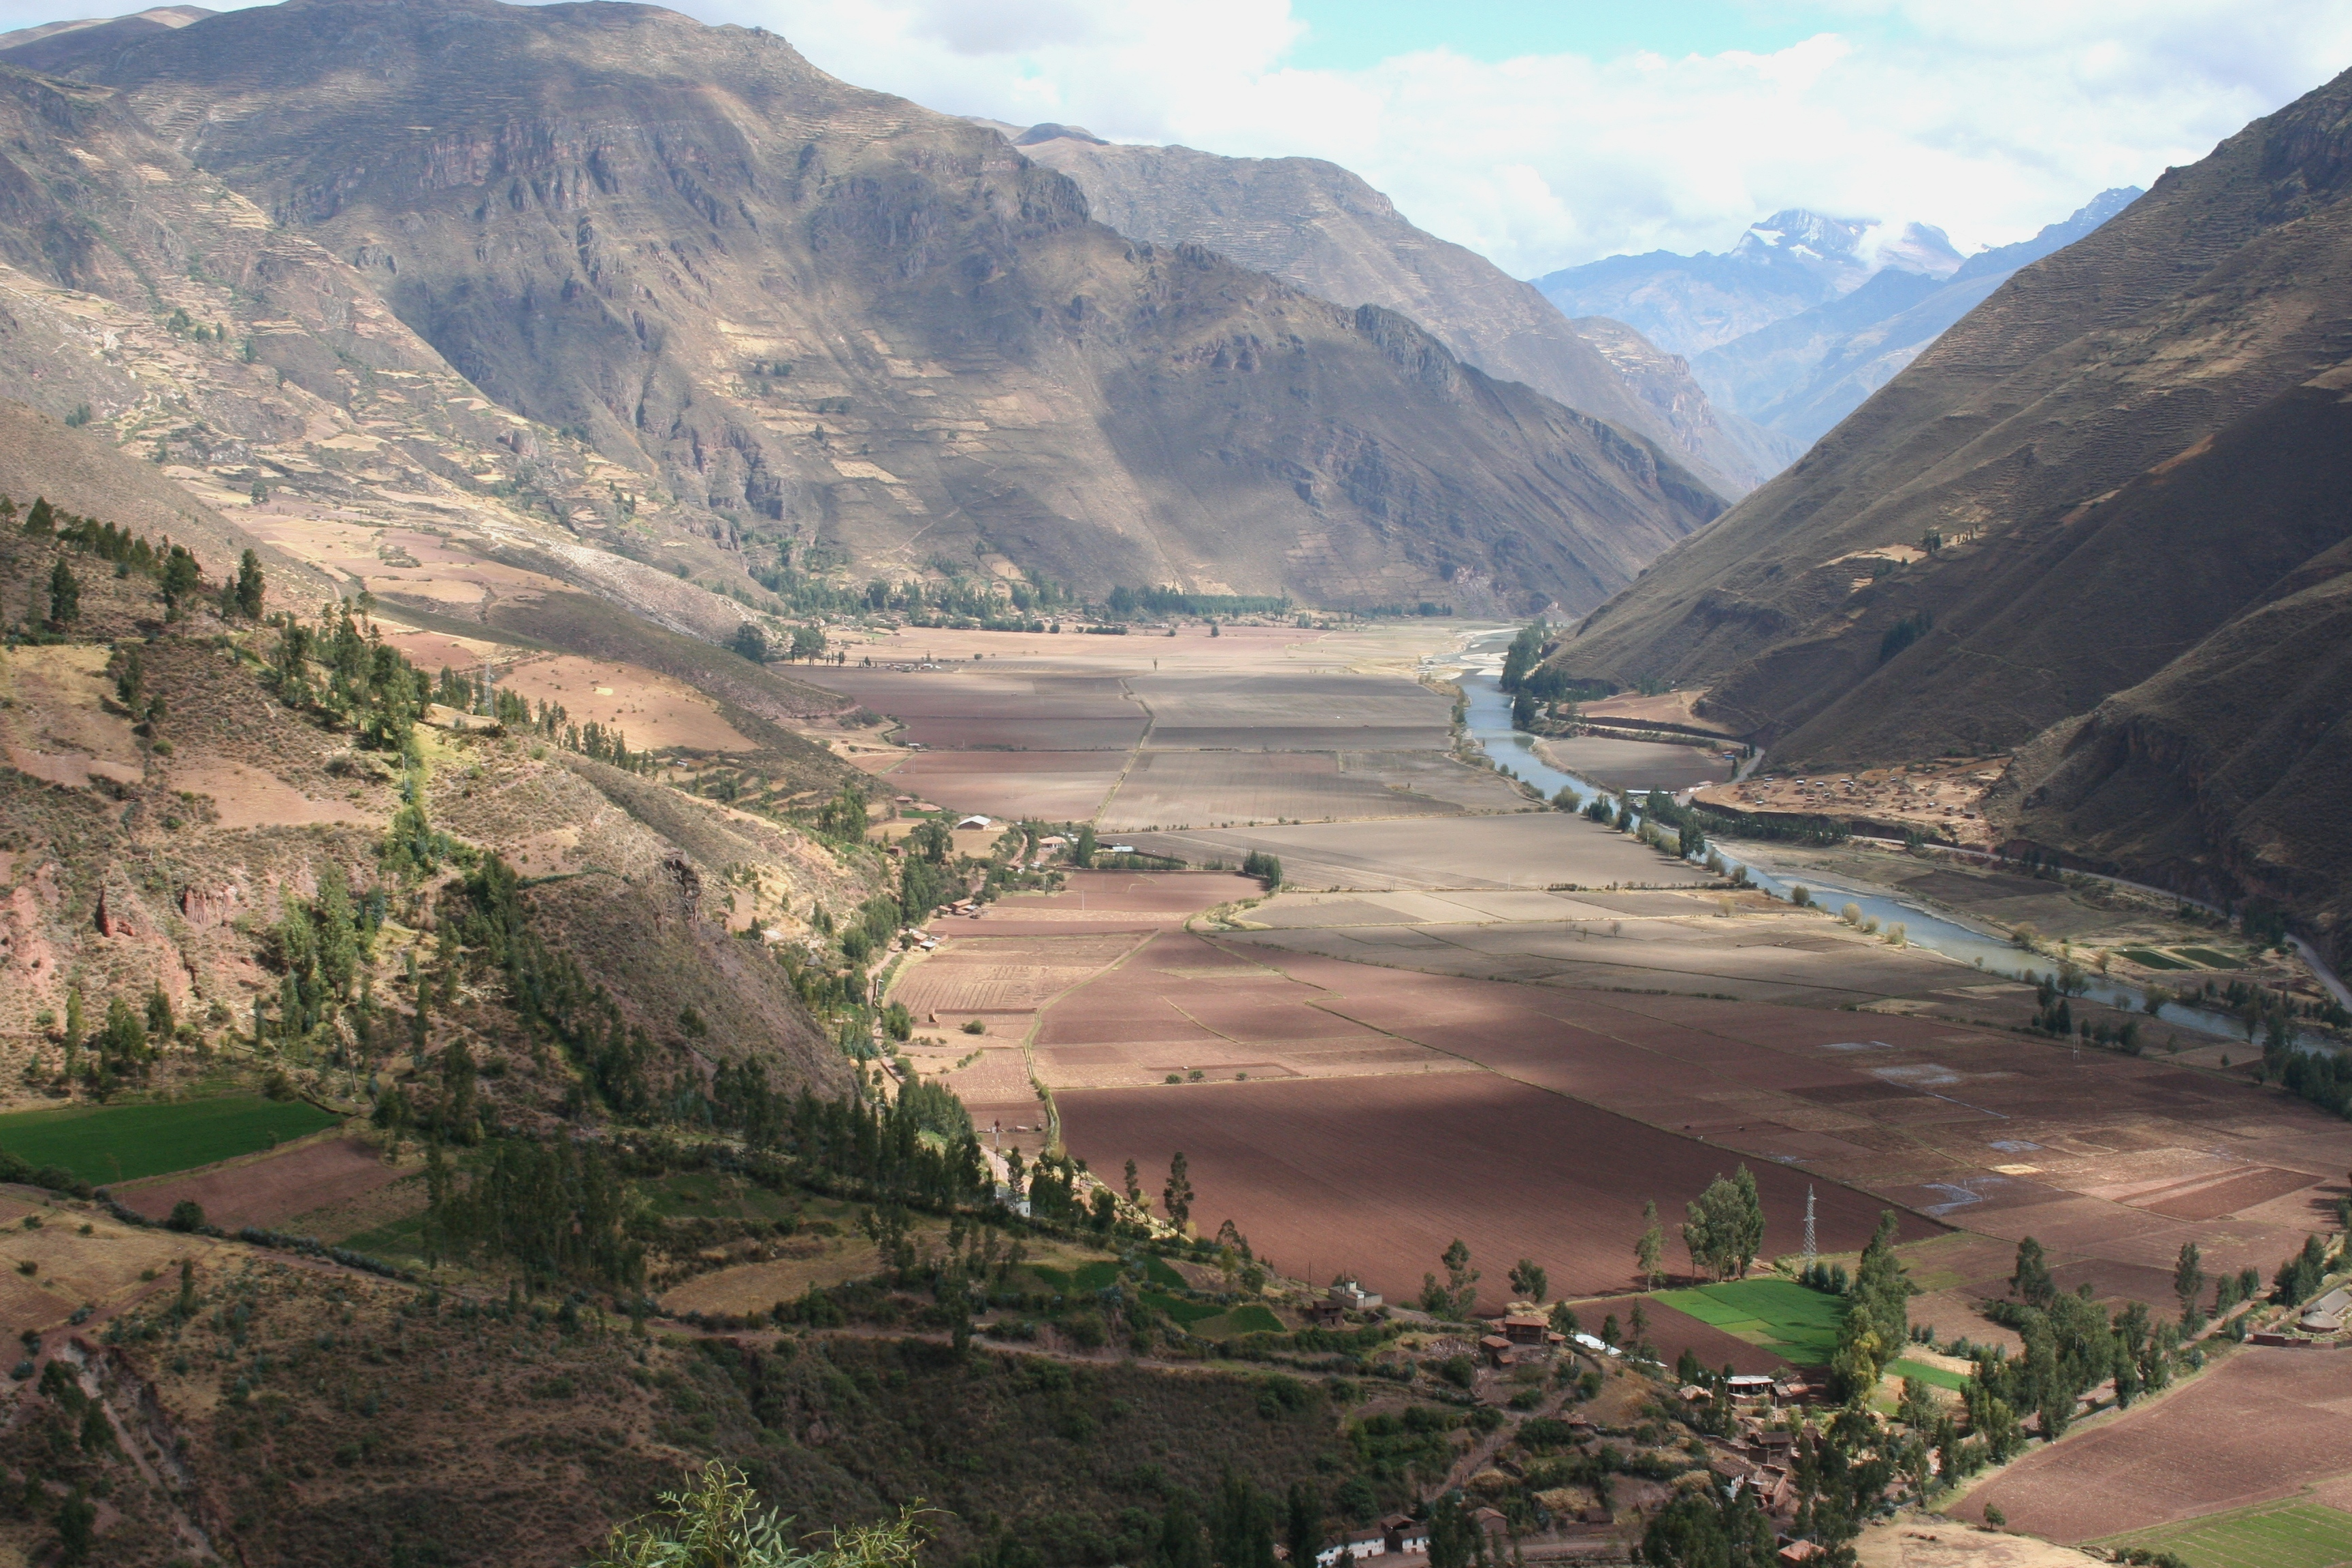 Sacred Valley of the Inca